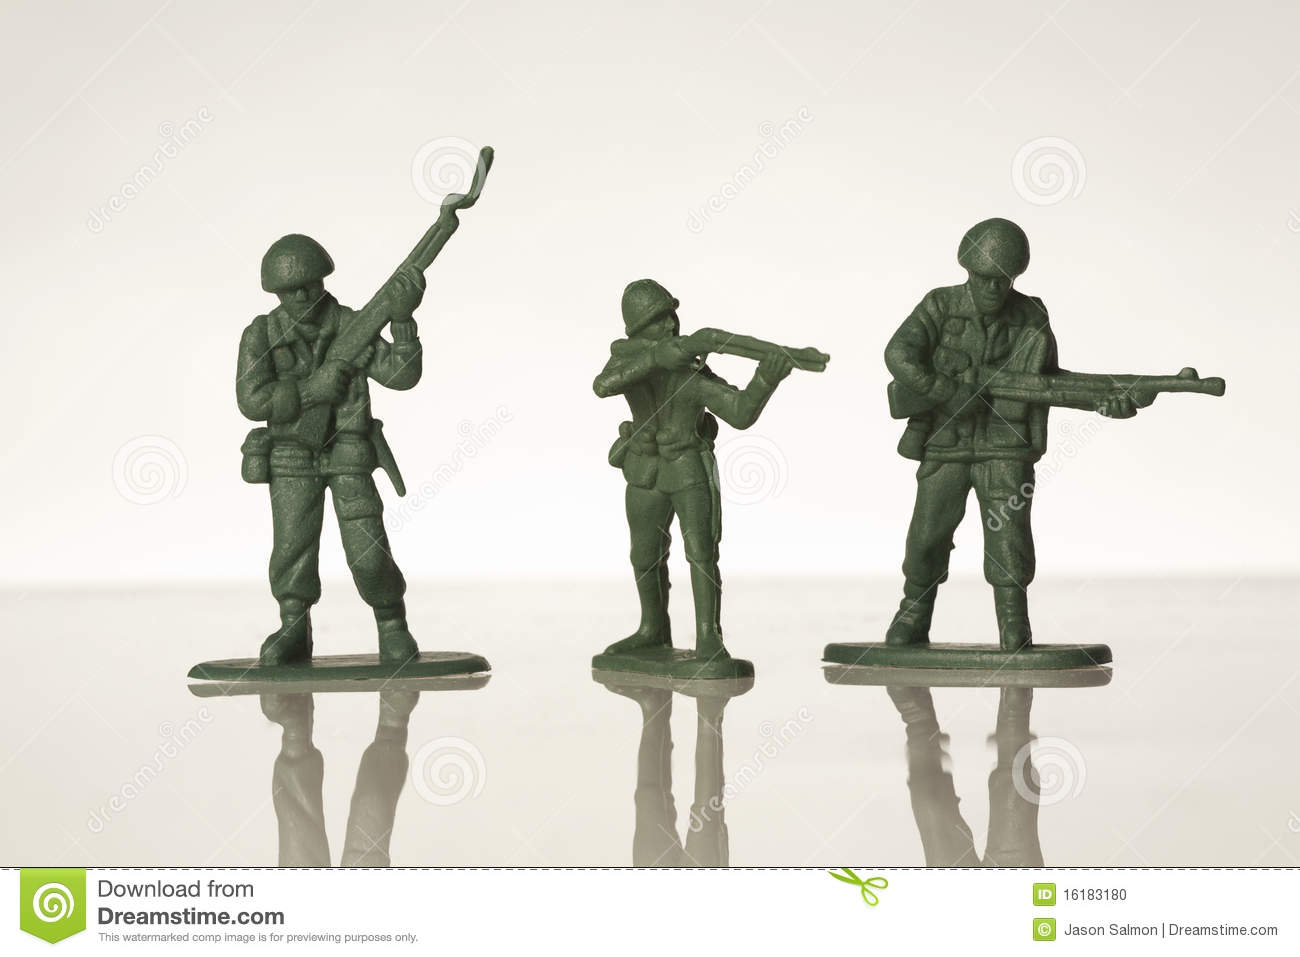 Toy Soldiers Stock Photo   Image  16183180